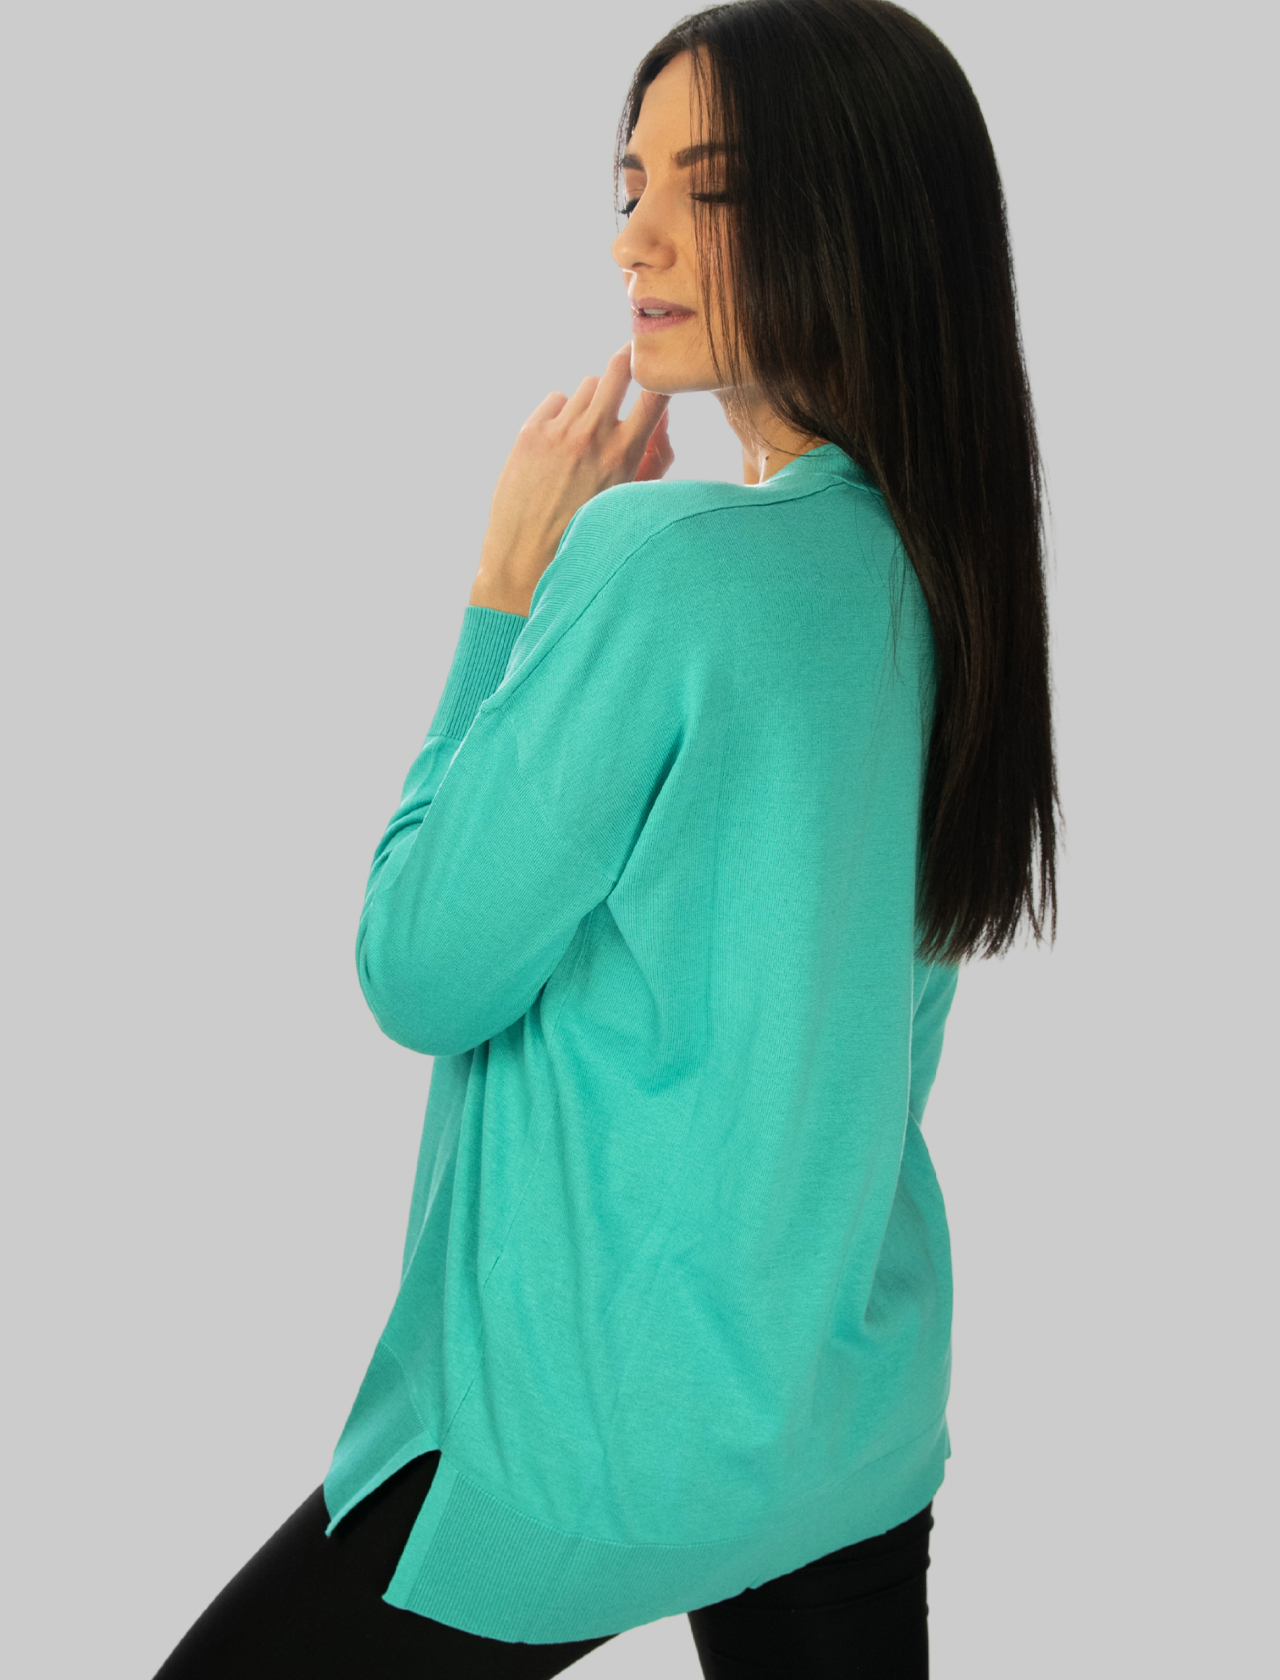 Women's Clothing Colors of the World Cardigan in Silk and Cotton with Turquoise V-Neck Maliparmi | Knitwear | JN34807807482012